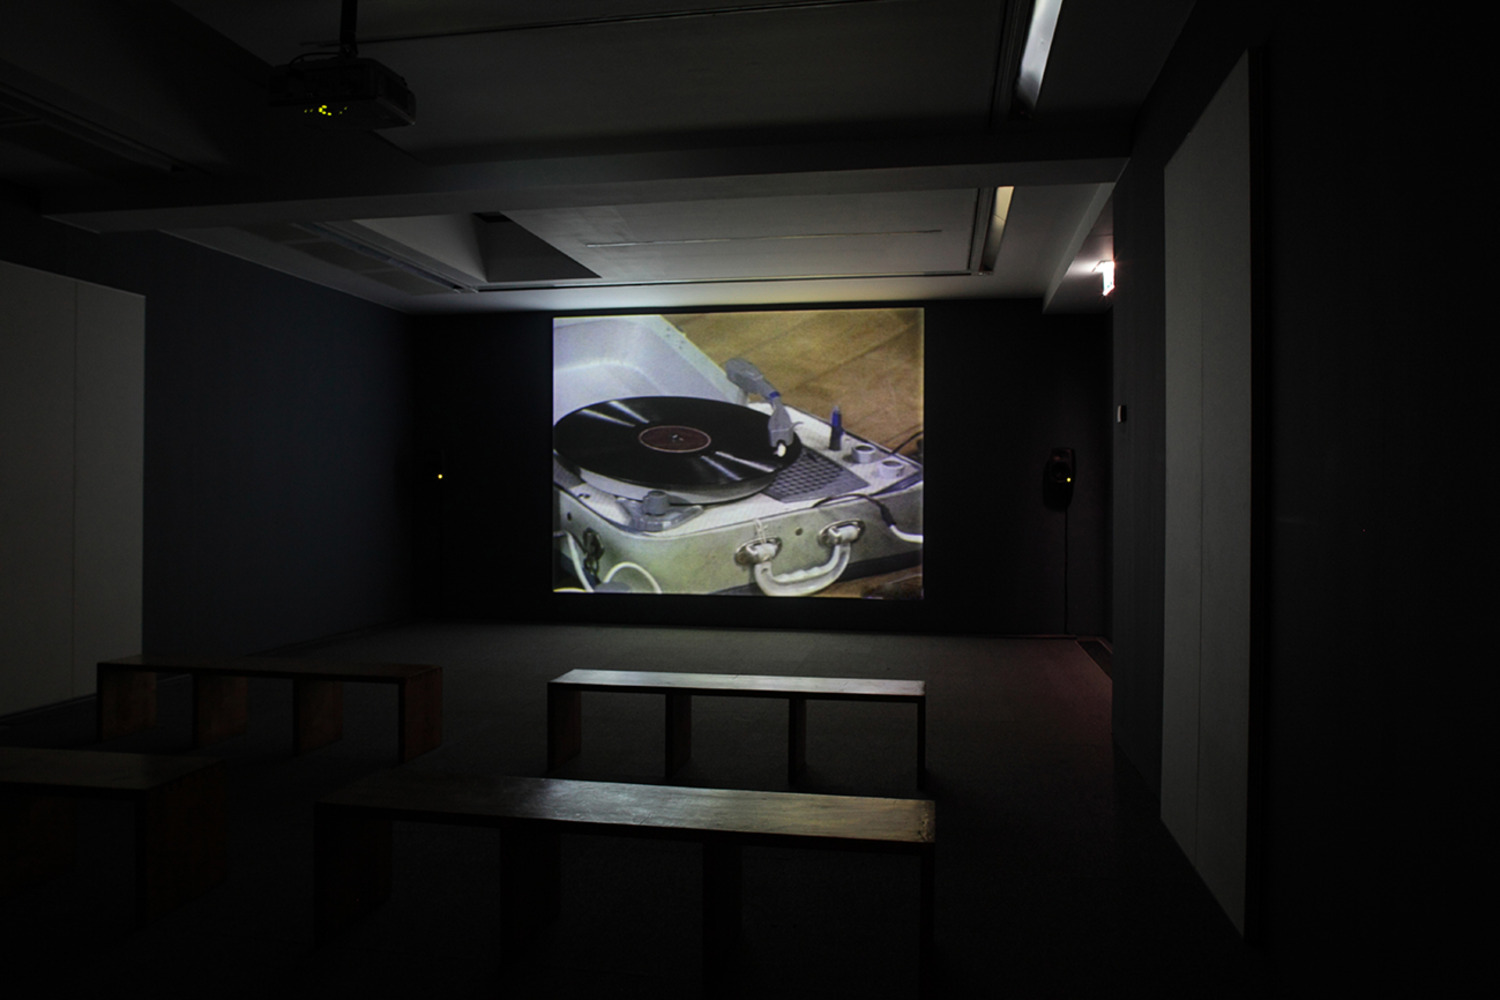 Pilgrimage From Scattered Points, 2006, DVD, colour and B/W, sound, 45 mins, Edition of 5 + 2 AP